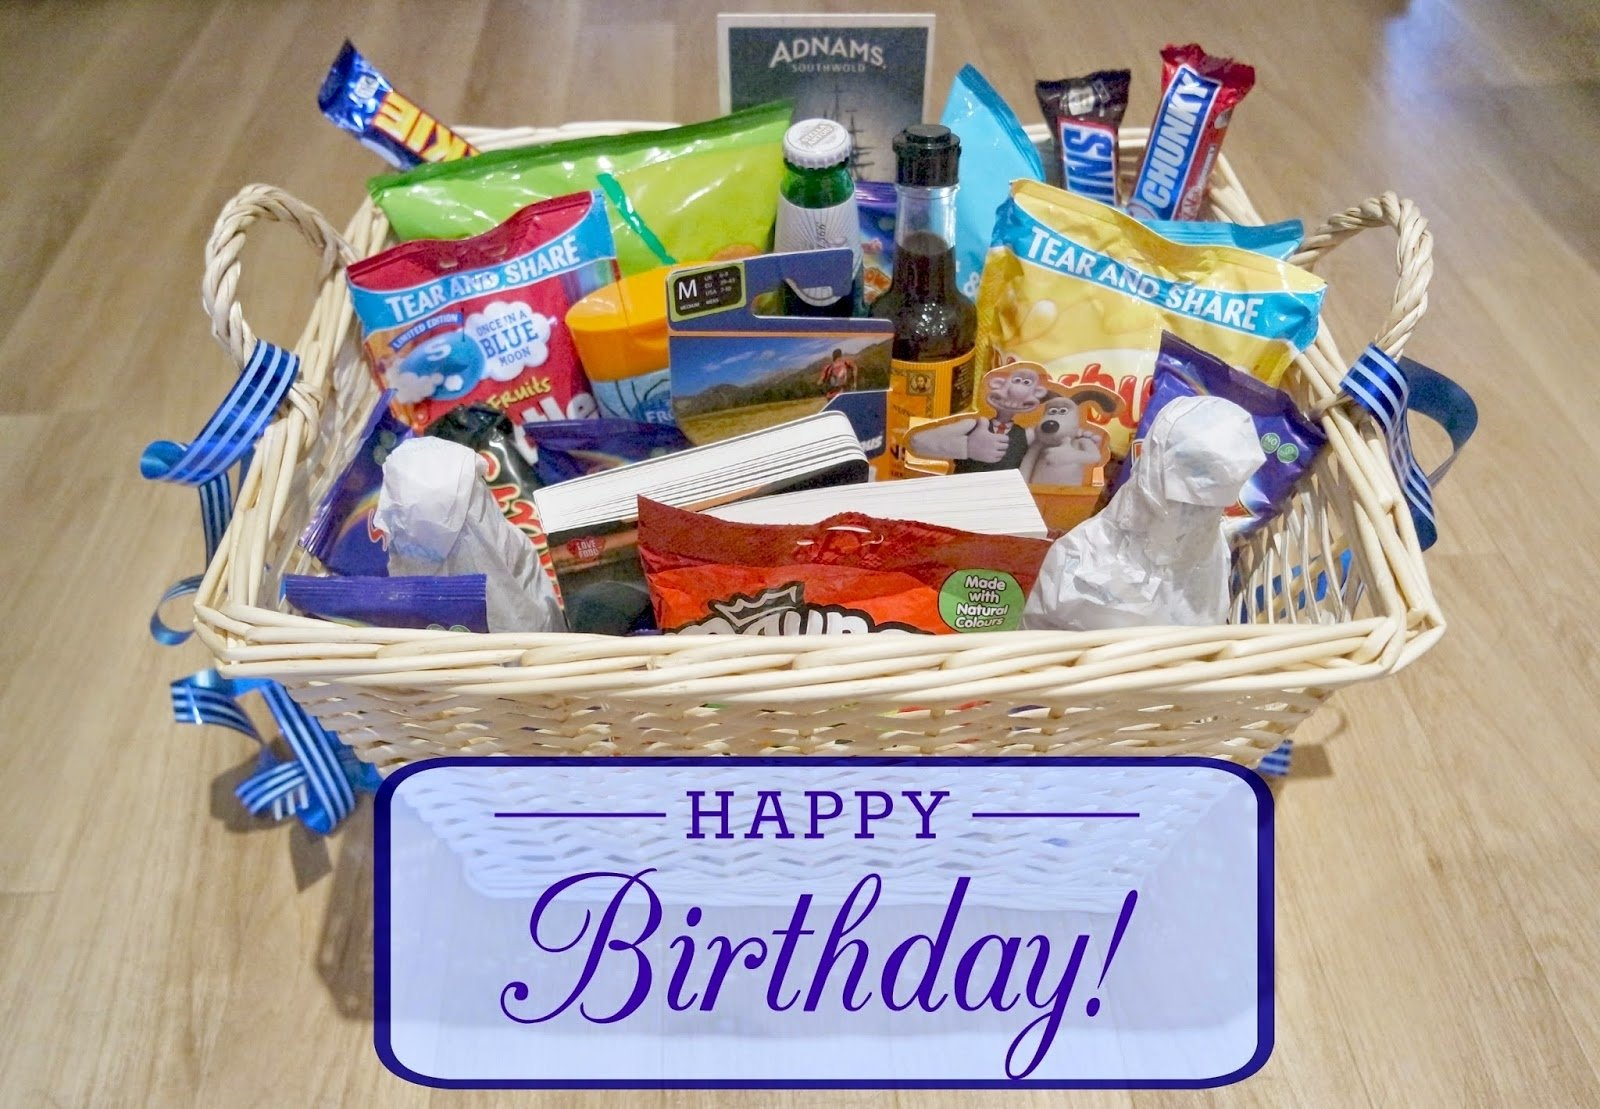 10 Stylish Gift Ideas For 50Th Birthday uptown peach my dads 50th birthday hamper mens gift ideas 9 2020